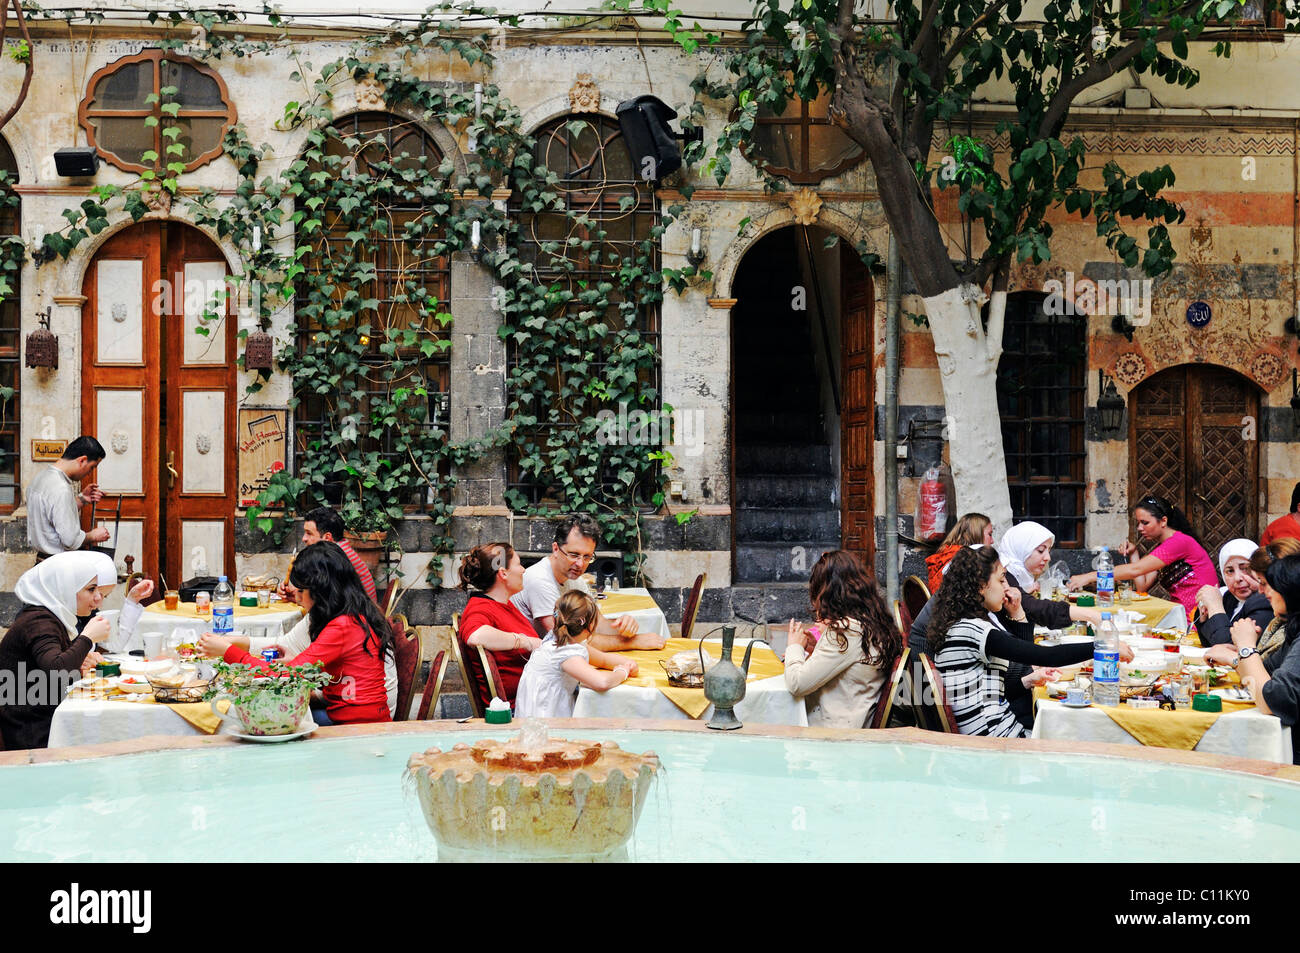 Fountain and guests eating in the courtyard of the Jabri House Restaurant, in an old Muslim palace, historic centre - Stock Image